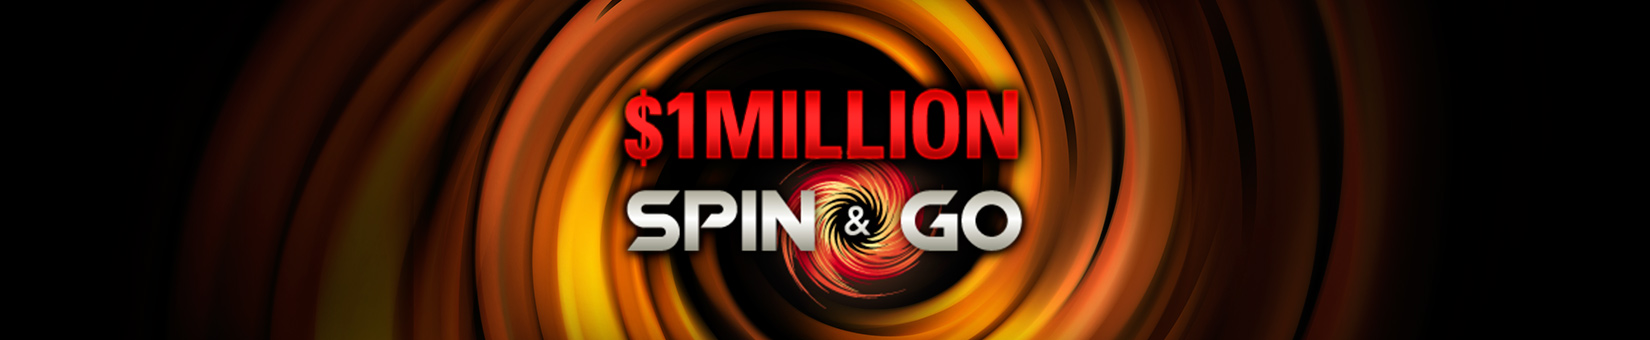 1 000 000 $ Spin & Go